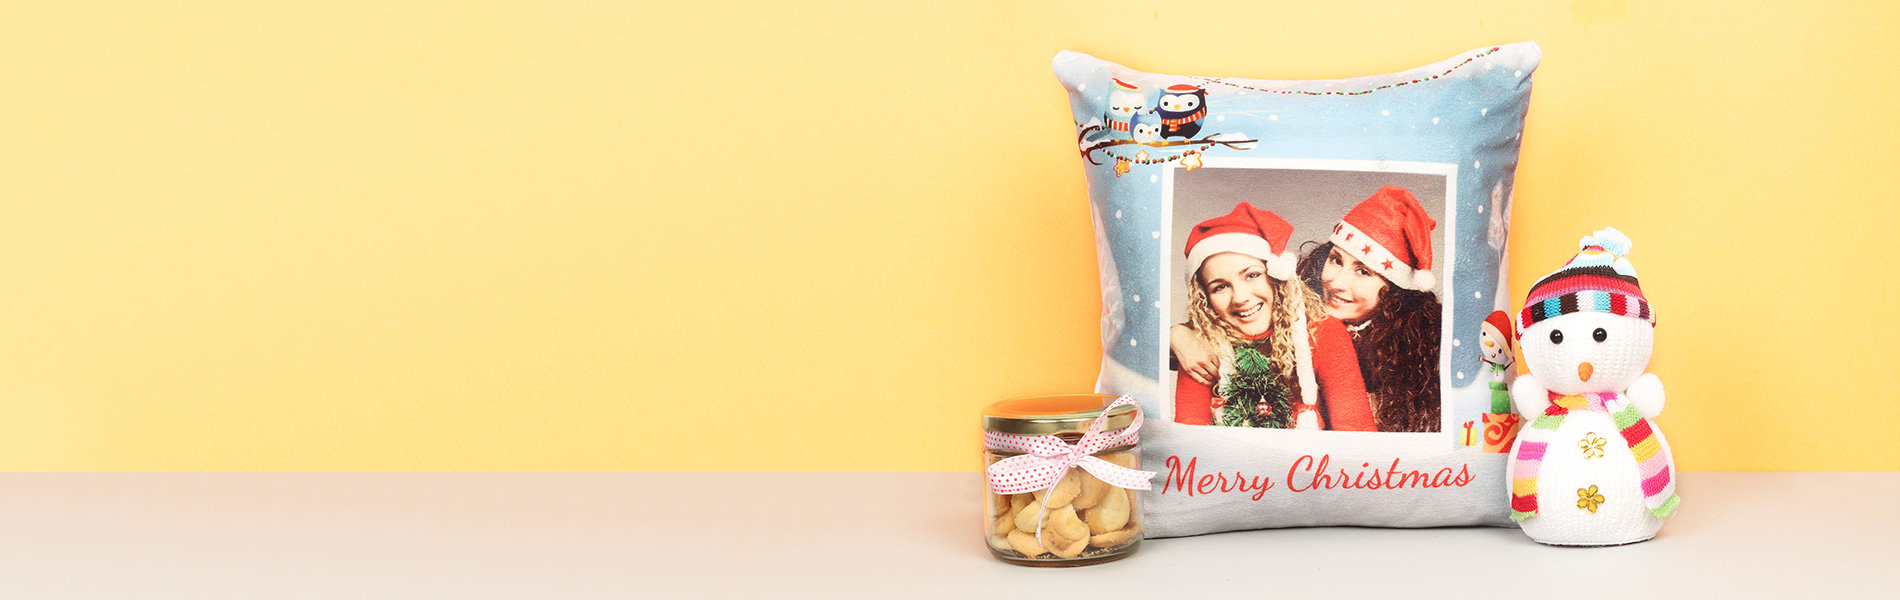 Send Christmas personalise Gifts